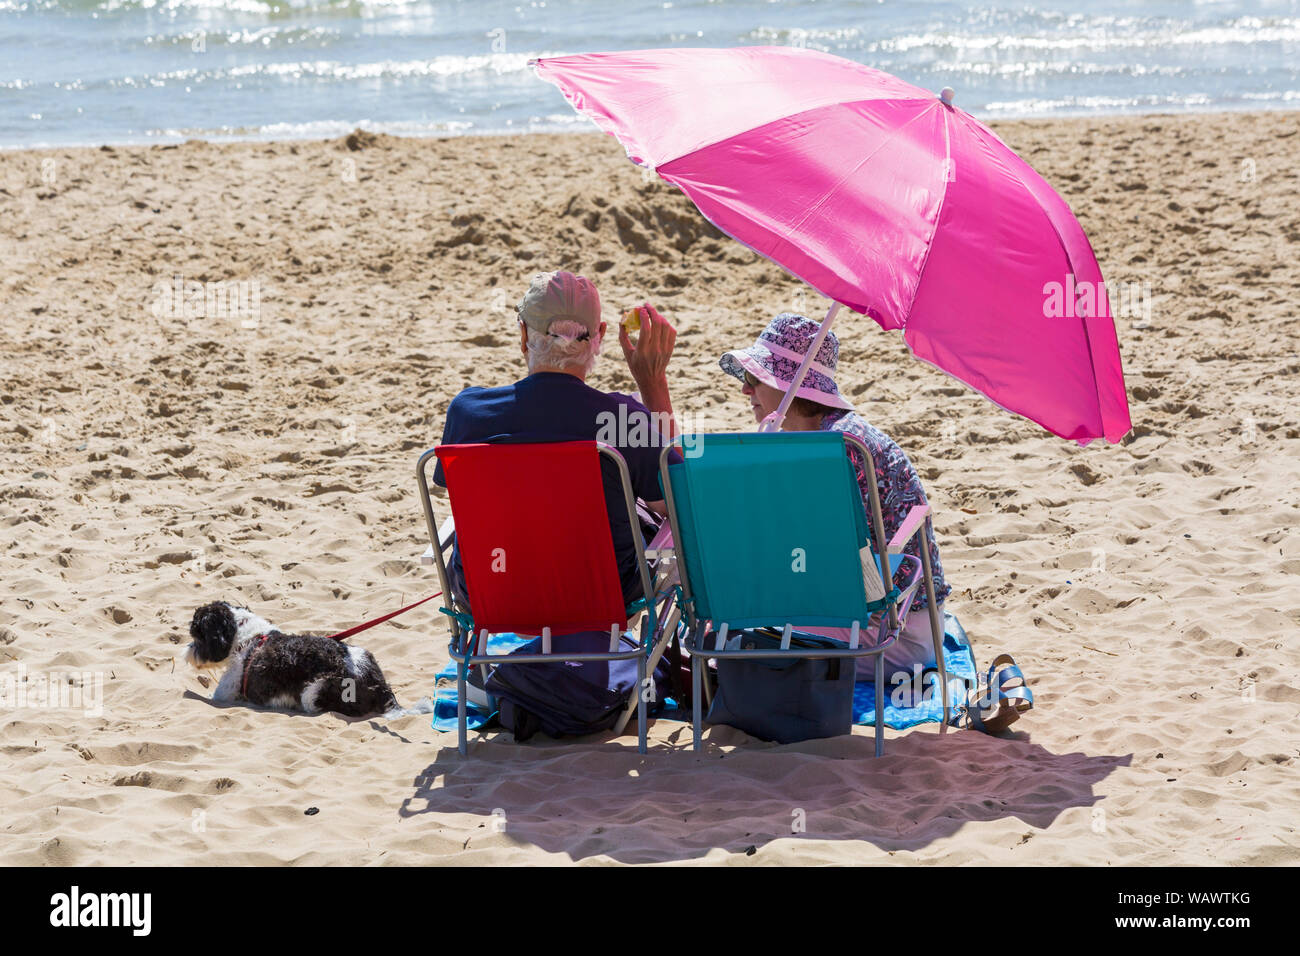 Bournemouth, Dorset UK. 22nd Aug 2019. UK weather: a lovely warm sunny day as beachgoers head to the seaside at Bournemouth beaches to enjoy the sunshine, as temperatures are set to get higher for the Bank Holiday weekend. Credit: Carolyn Jenkins/Alamy Live News Stock Photo